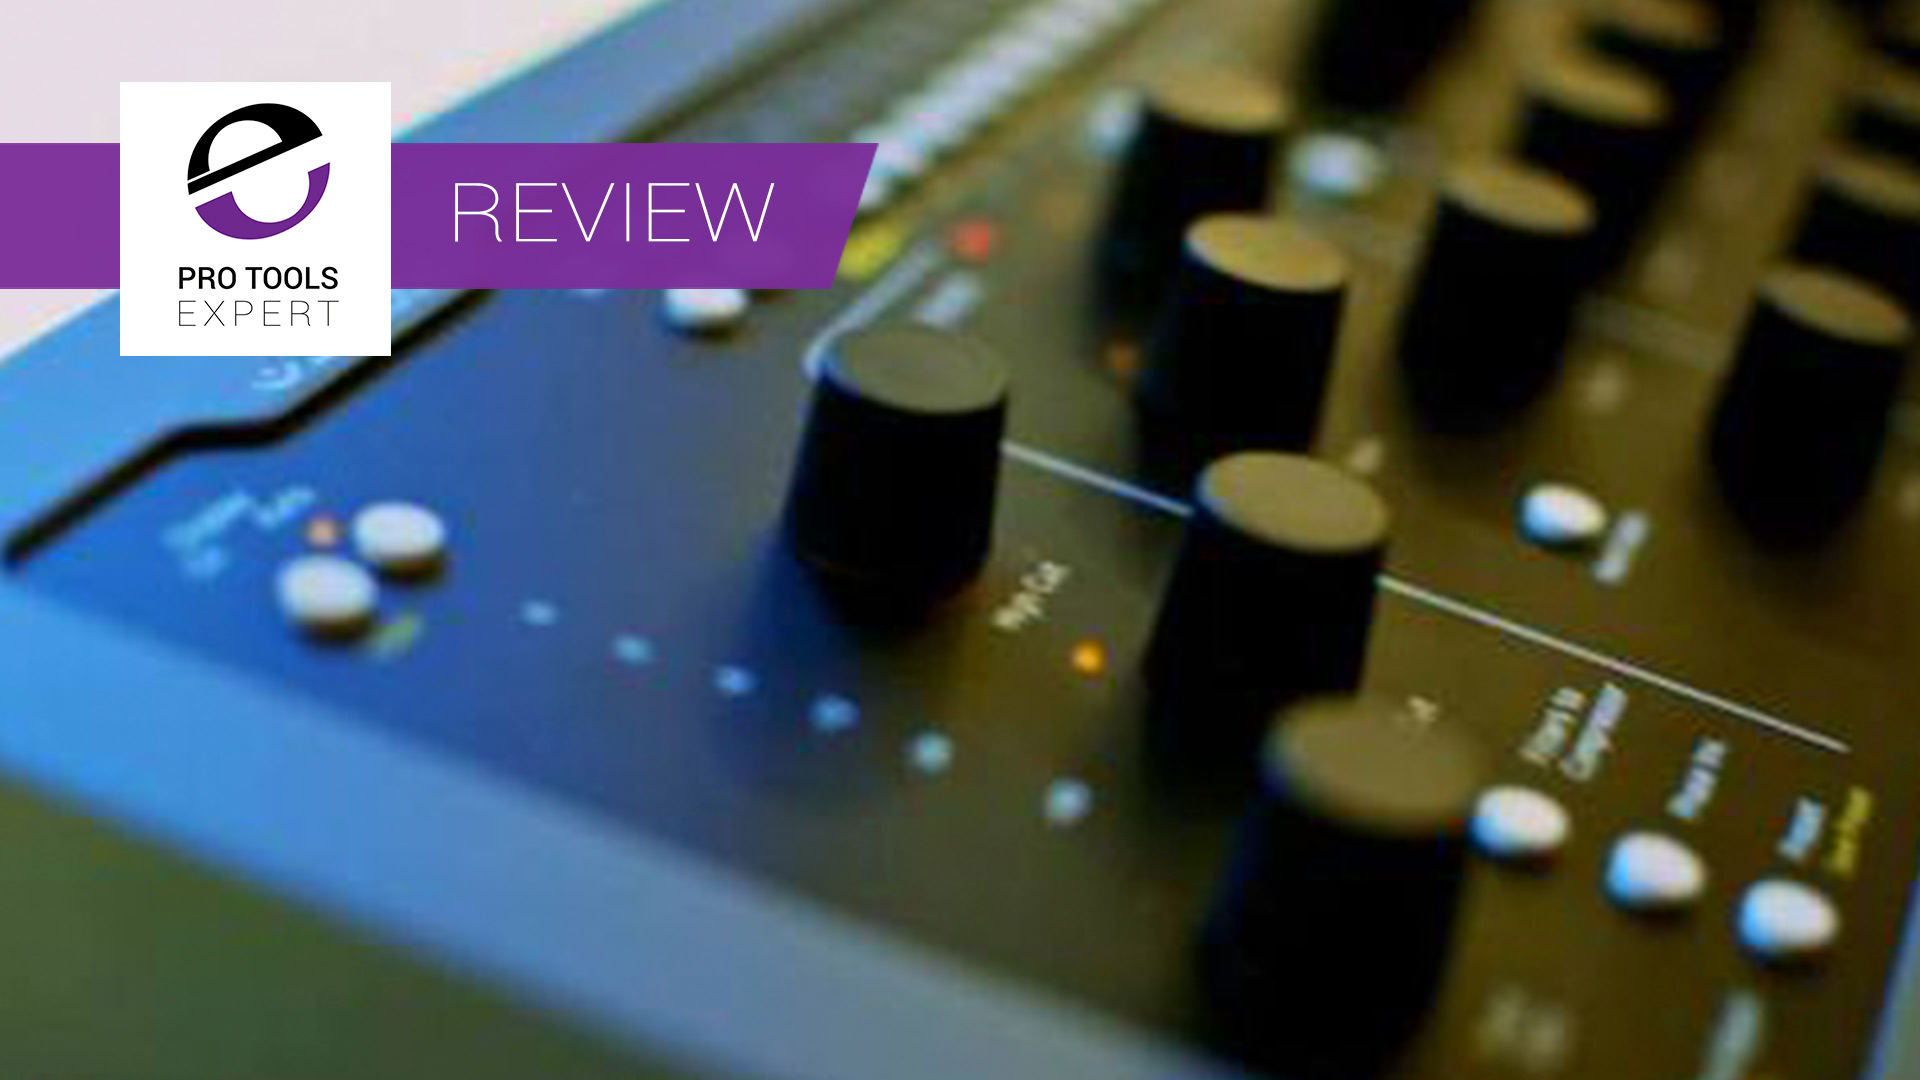 review-softube-console-1-pro-tools-expert.jpg